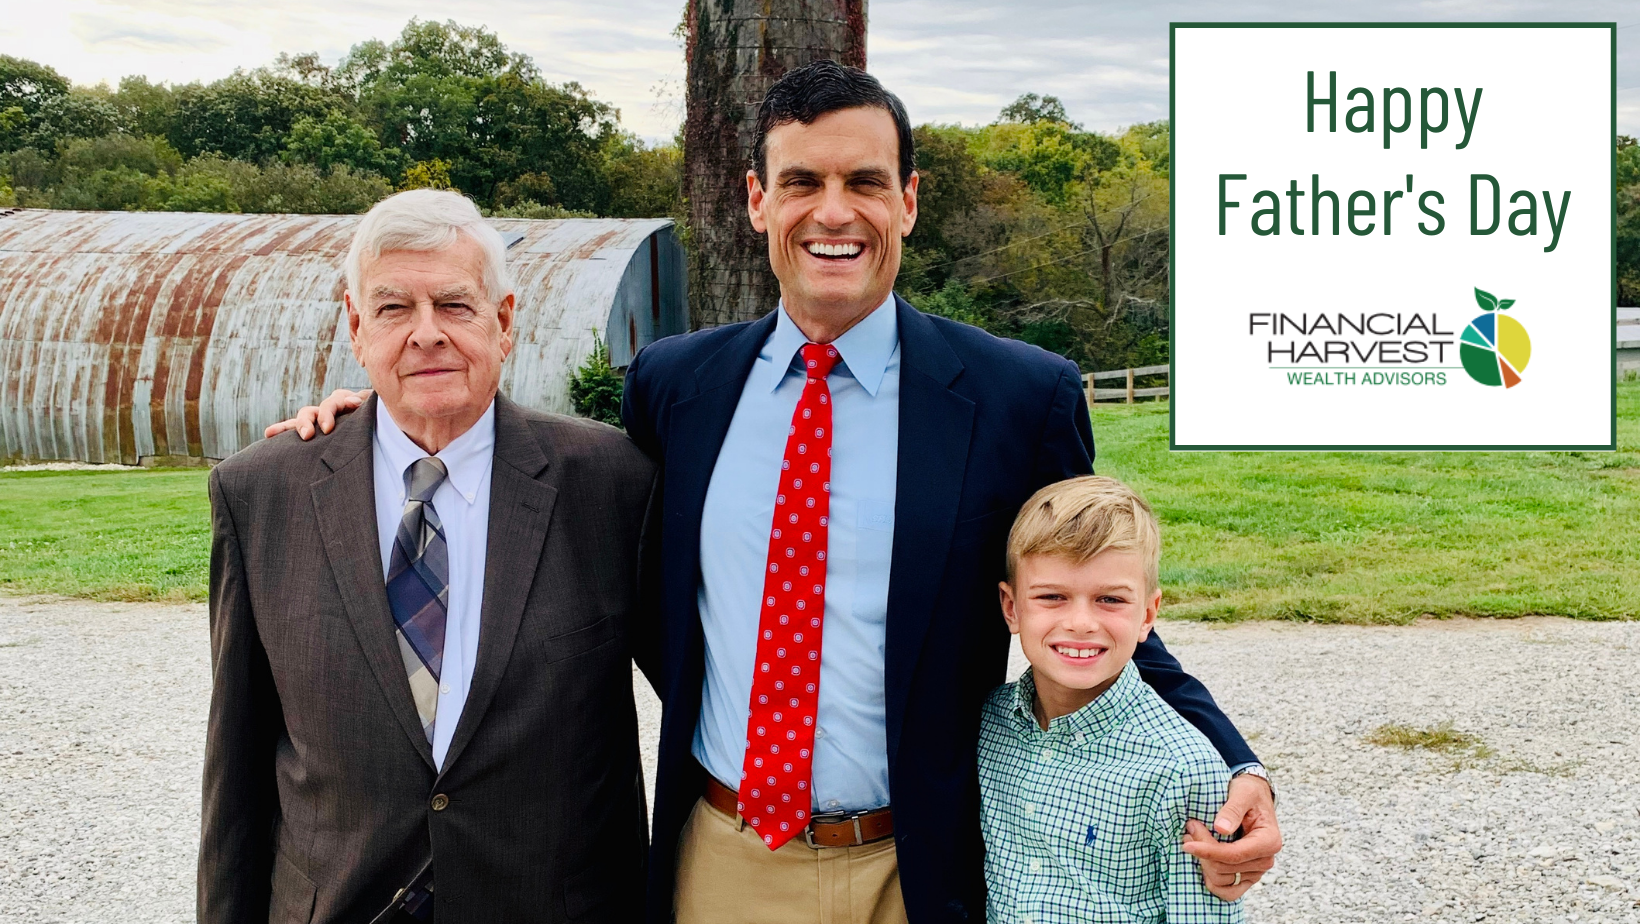 Happy father's day from financial harvest